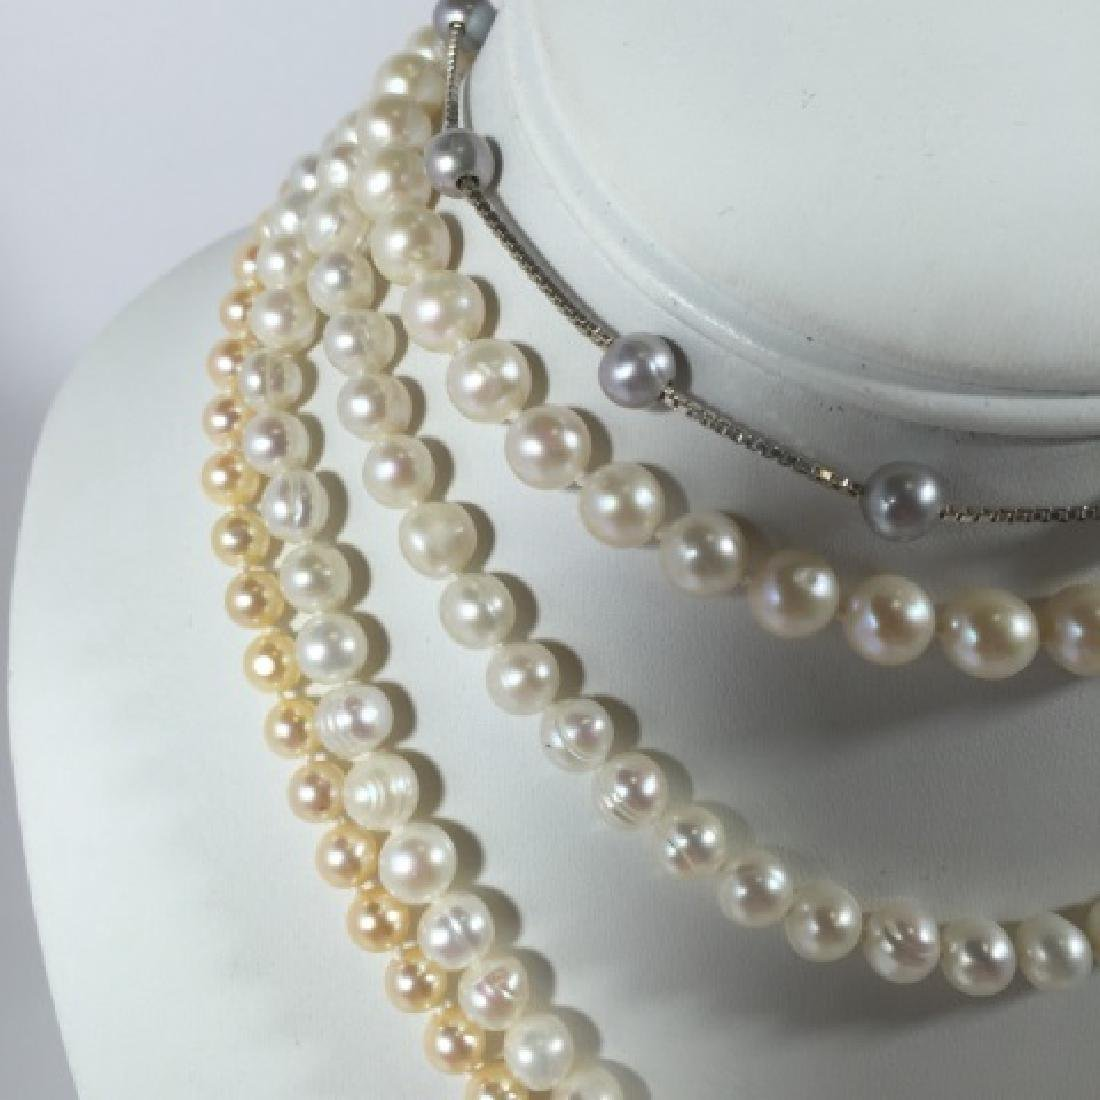 Group of Pearl Necklaces 2 Gold 1 Silver Clasp - 2